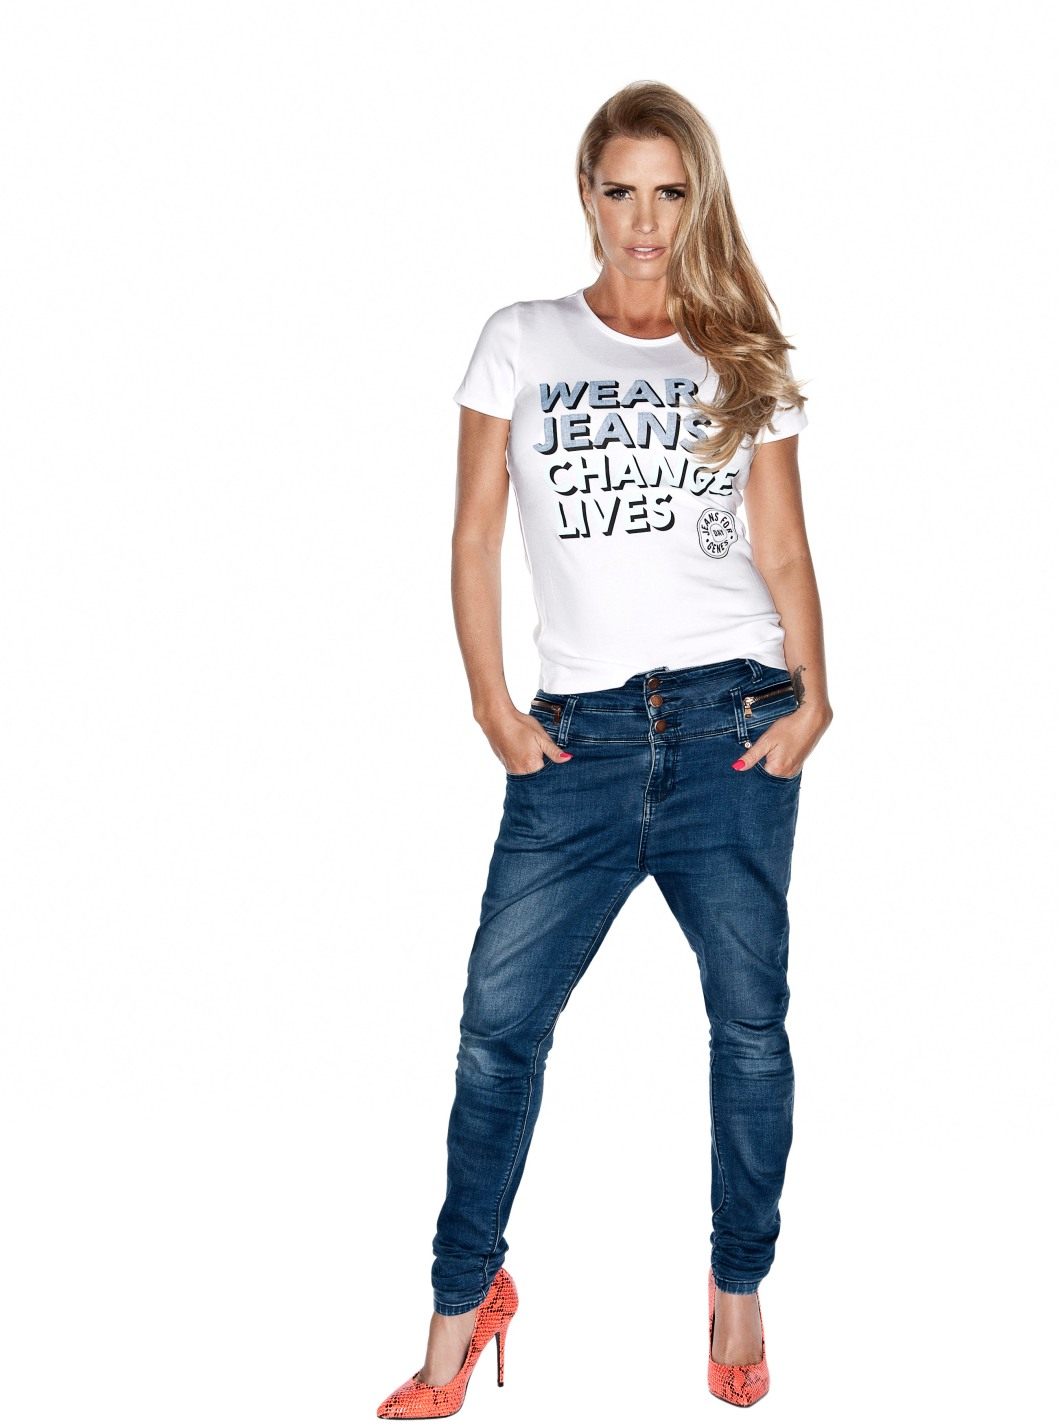 Katie Price in Jeans for Genes white campaign t-shirt